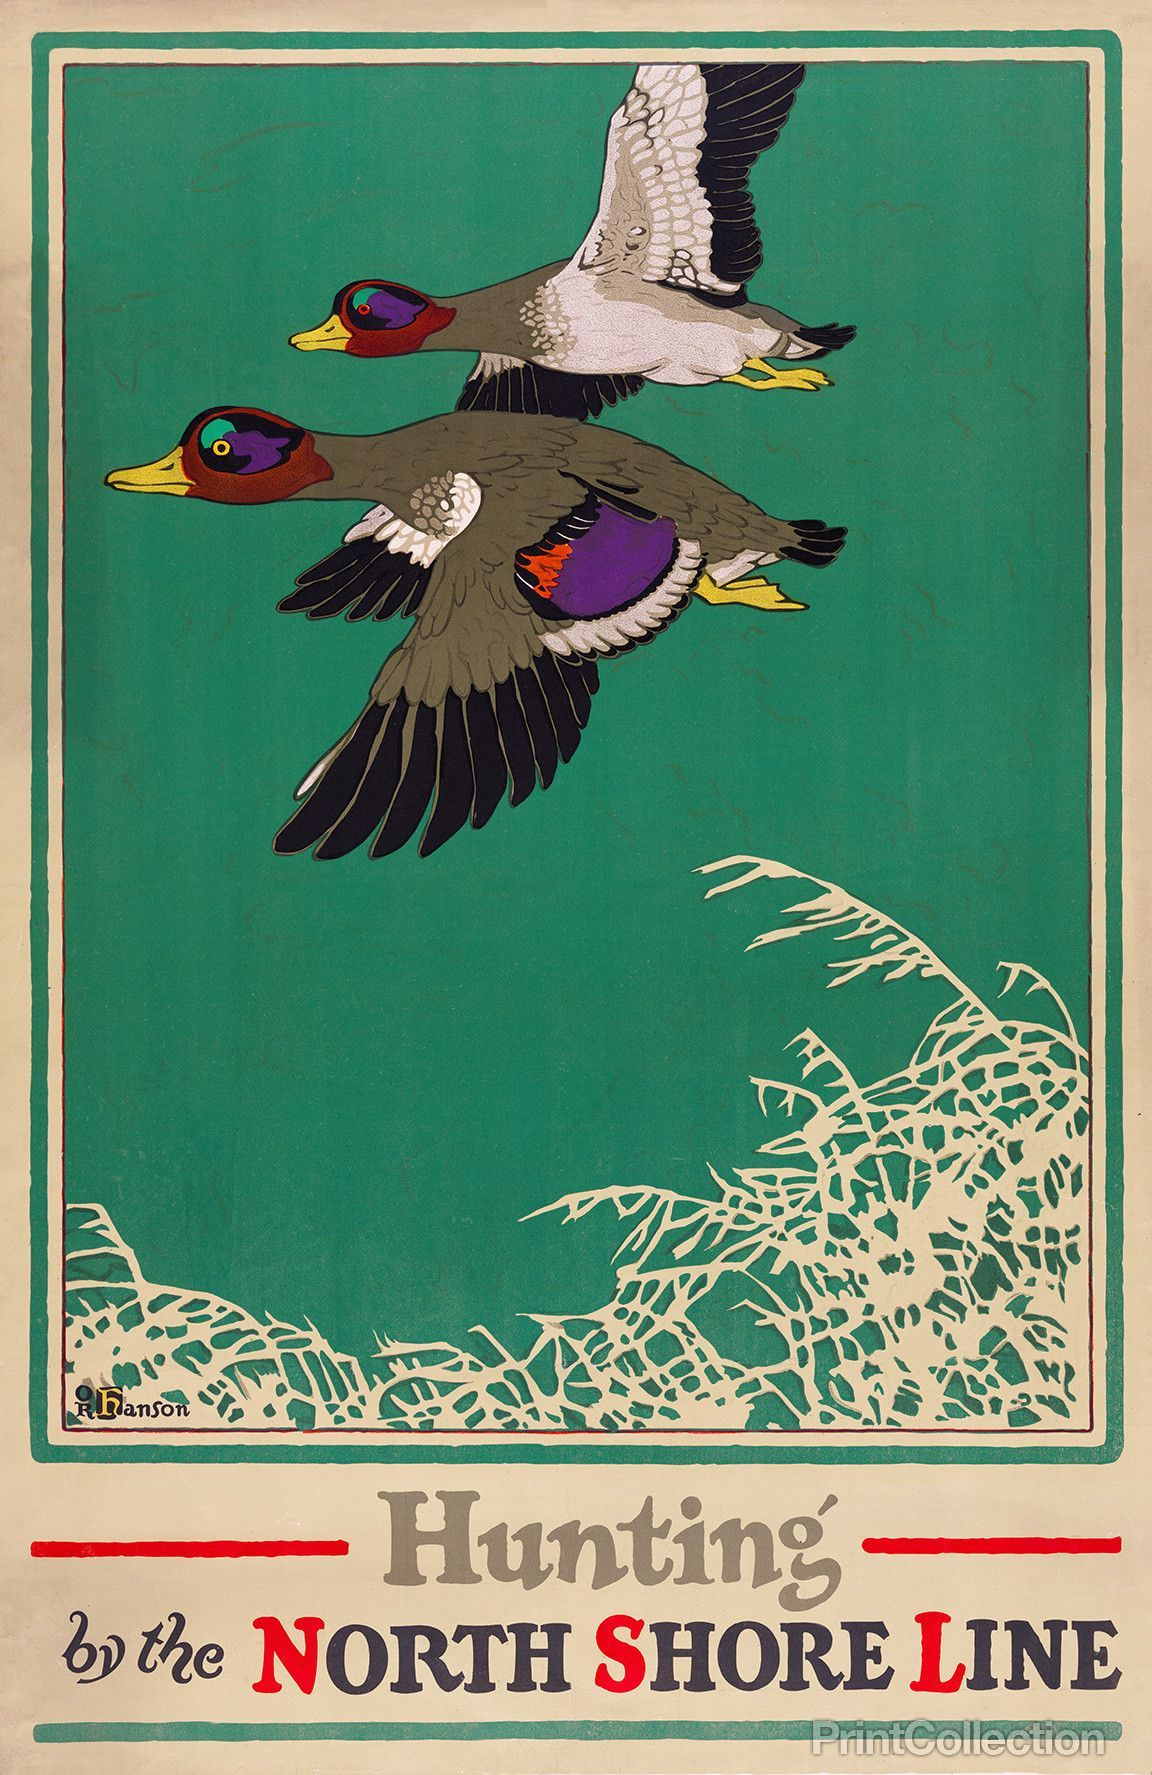 Hunting by the North Shore Line created by Oscar Rabe Hanson for the Chicago Illinois Litho Company in 1923 as a color lithograph at 106 x 71 cm.åÊ Poster shows mallards flying.åÊAdvertisementåÊfor th